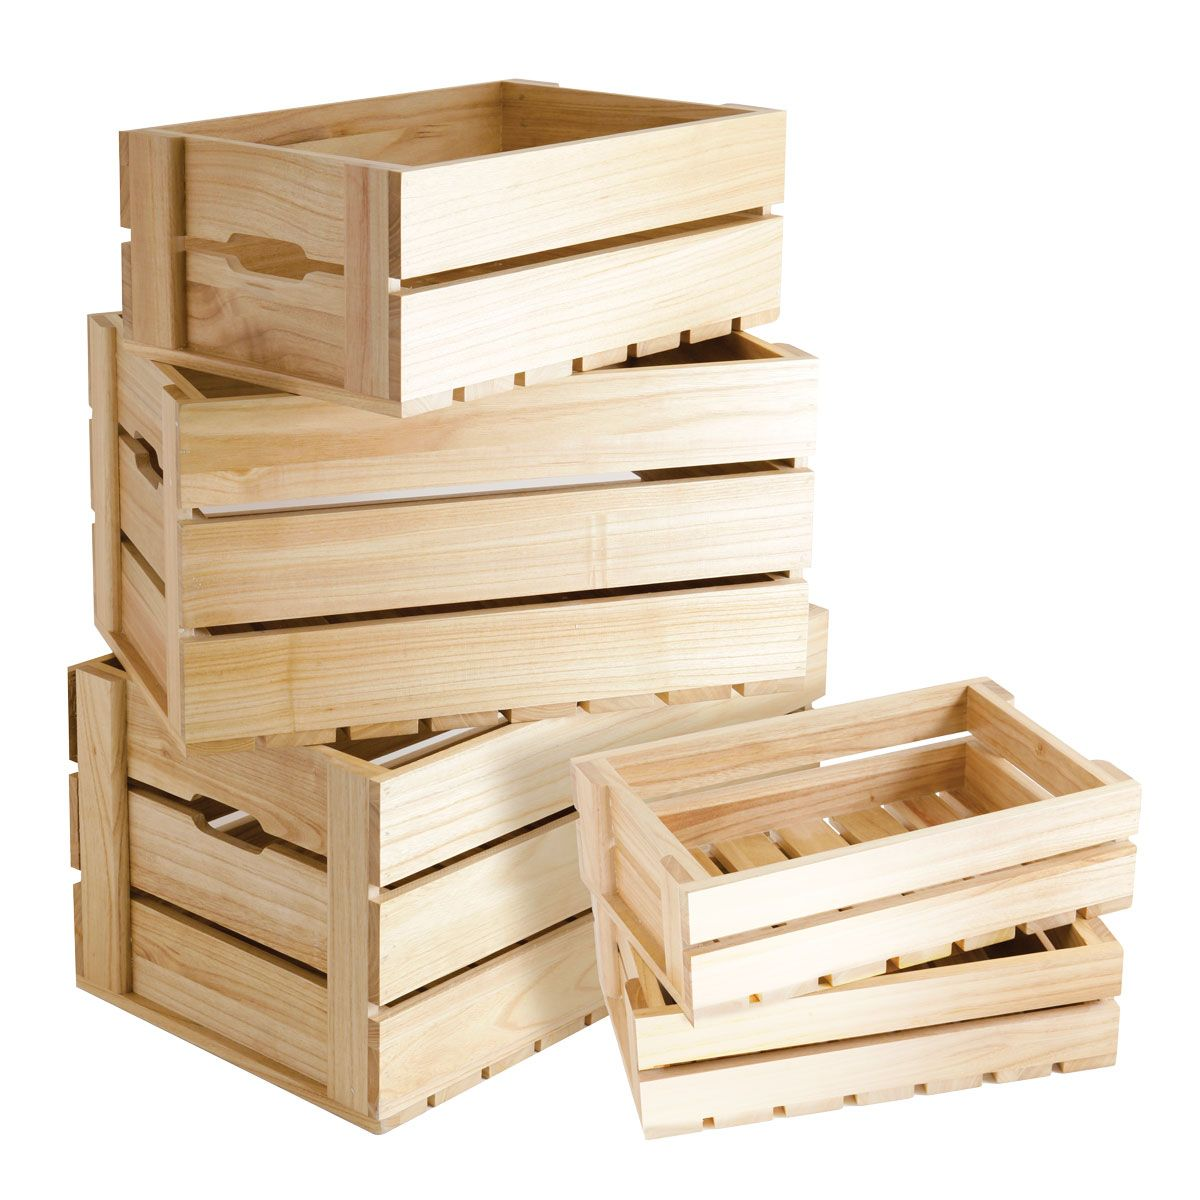 Advantages of wood crates projects to try pinterest for Wooden box storage ideas